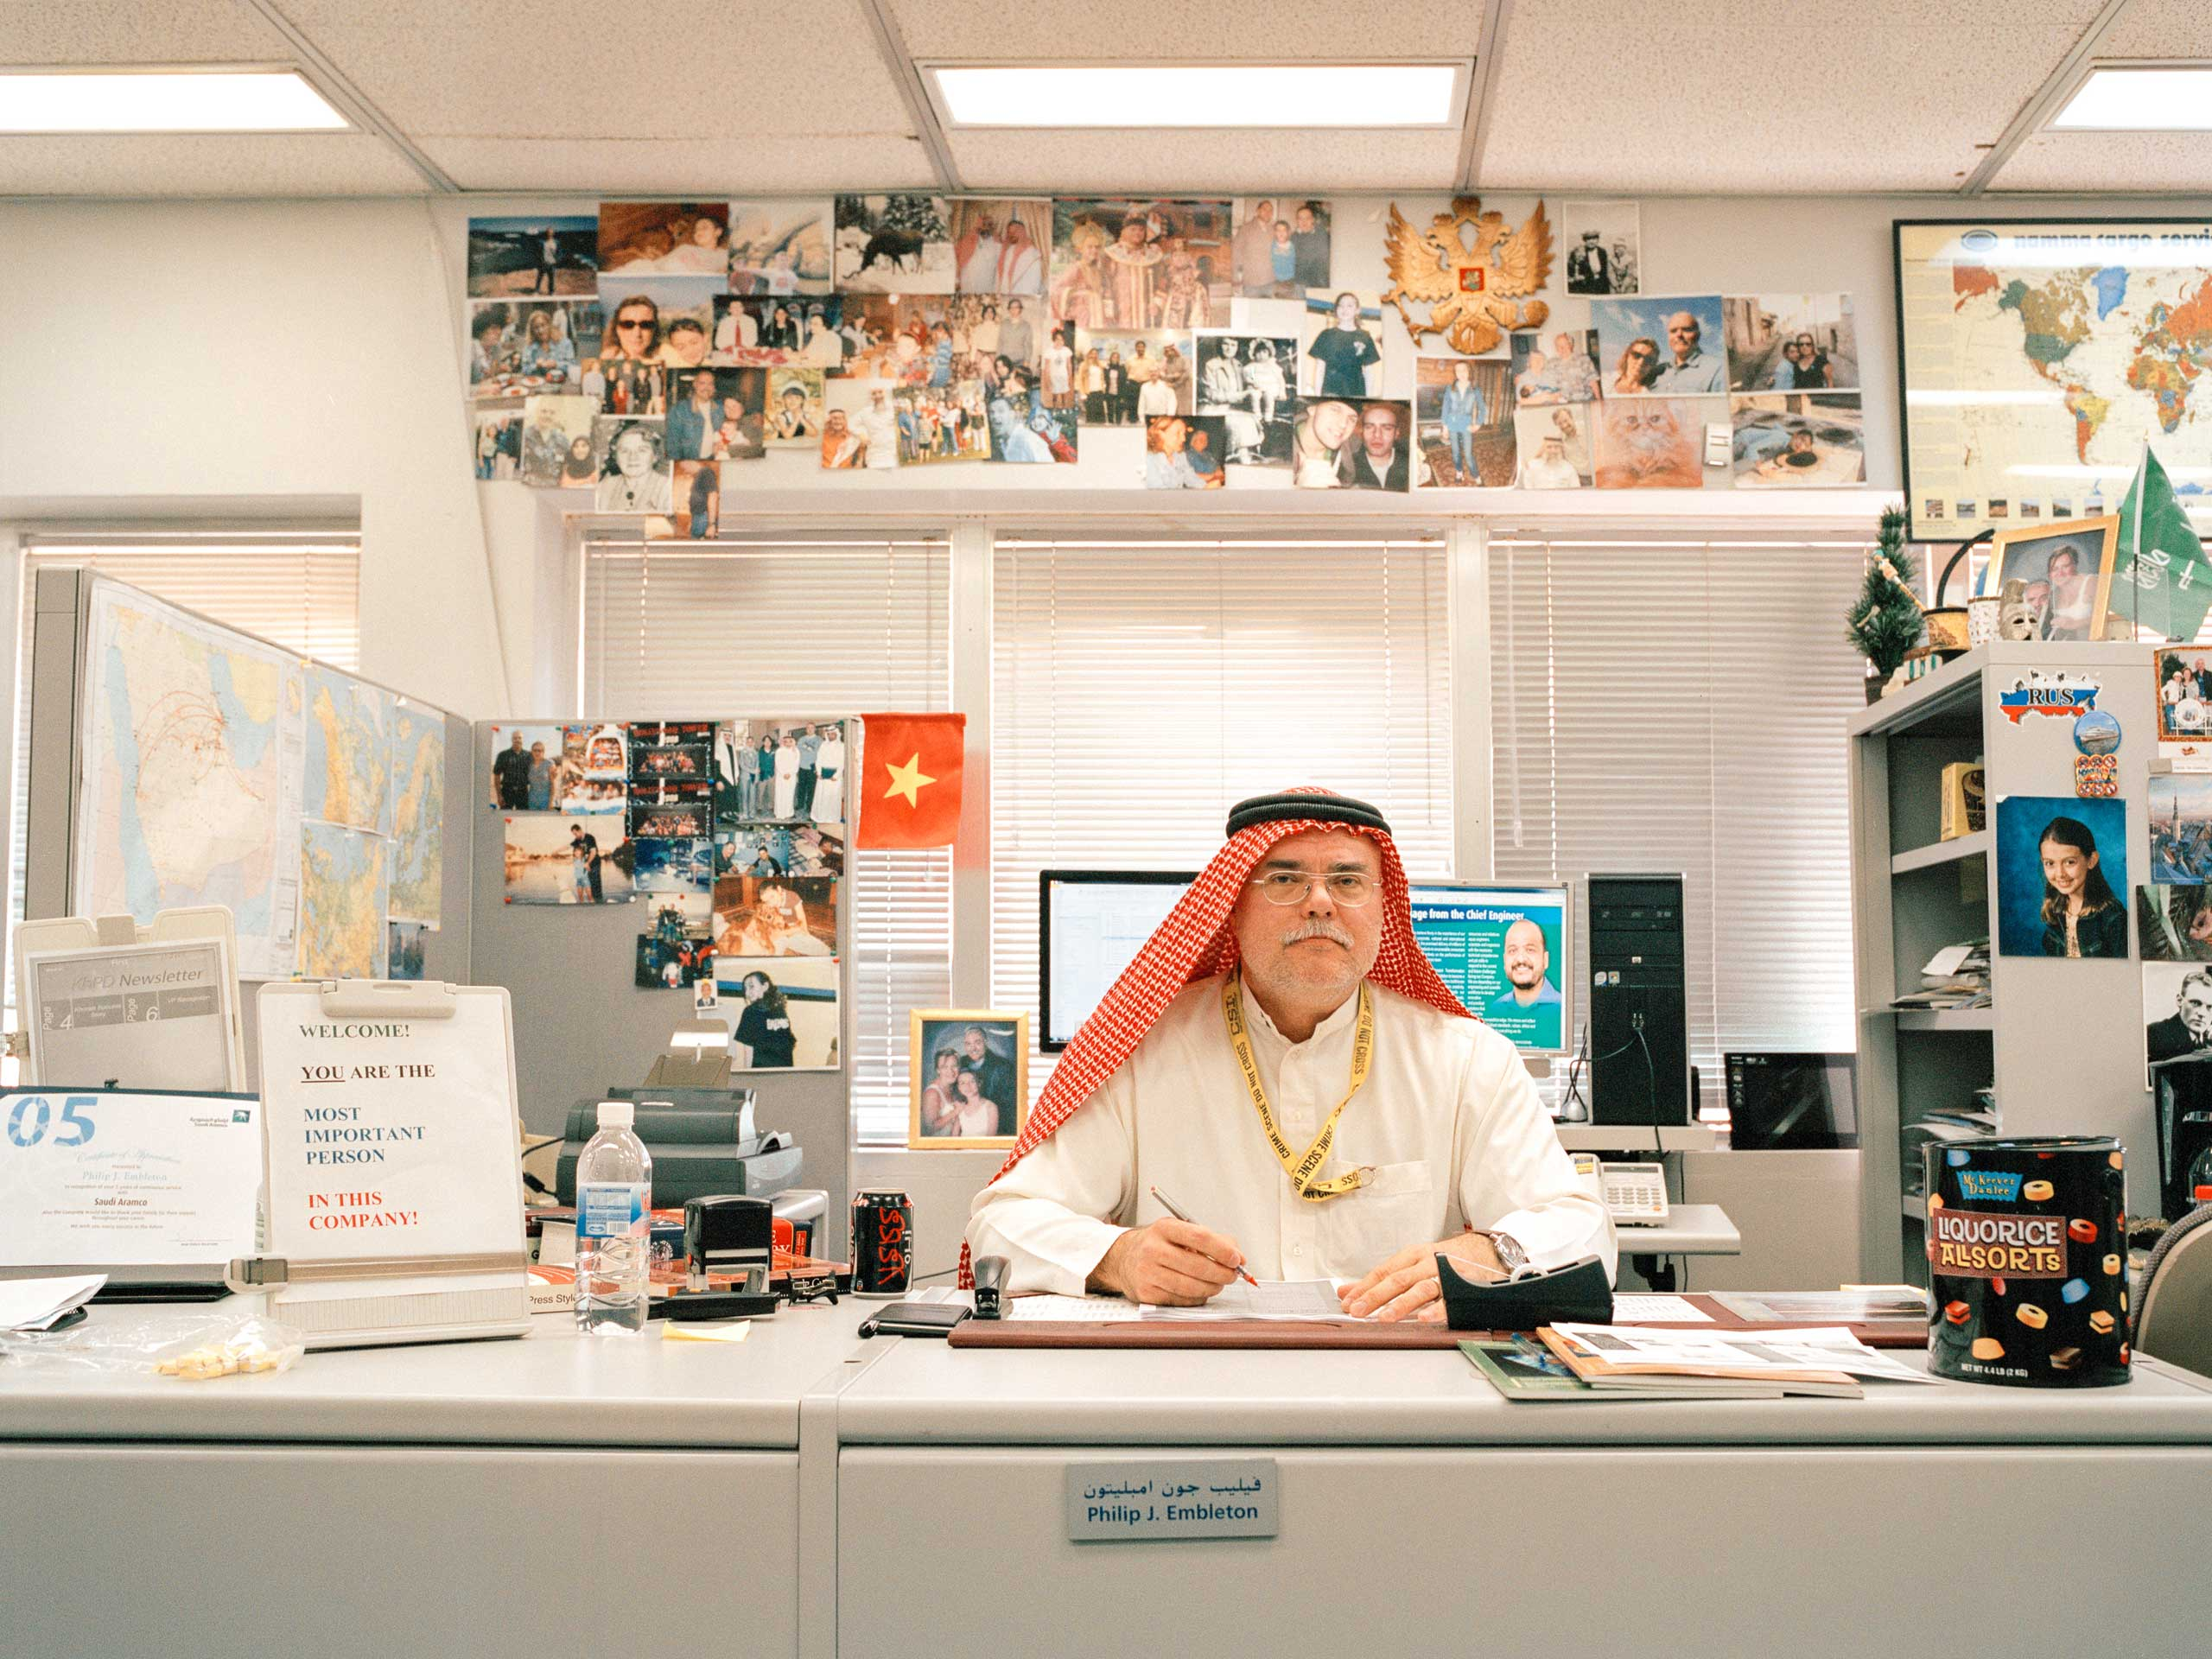 Mr. Embleton is a Canadian expatriate working for Saudi Aramco Public Relations. Sometimes, he chooses to wear a traditional Saudi thobe and guthra to work.